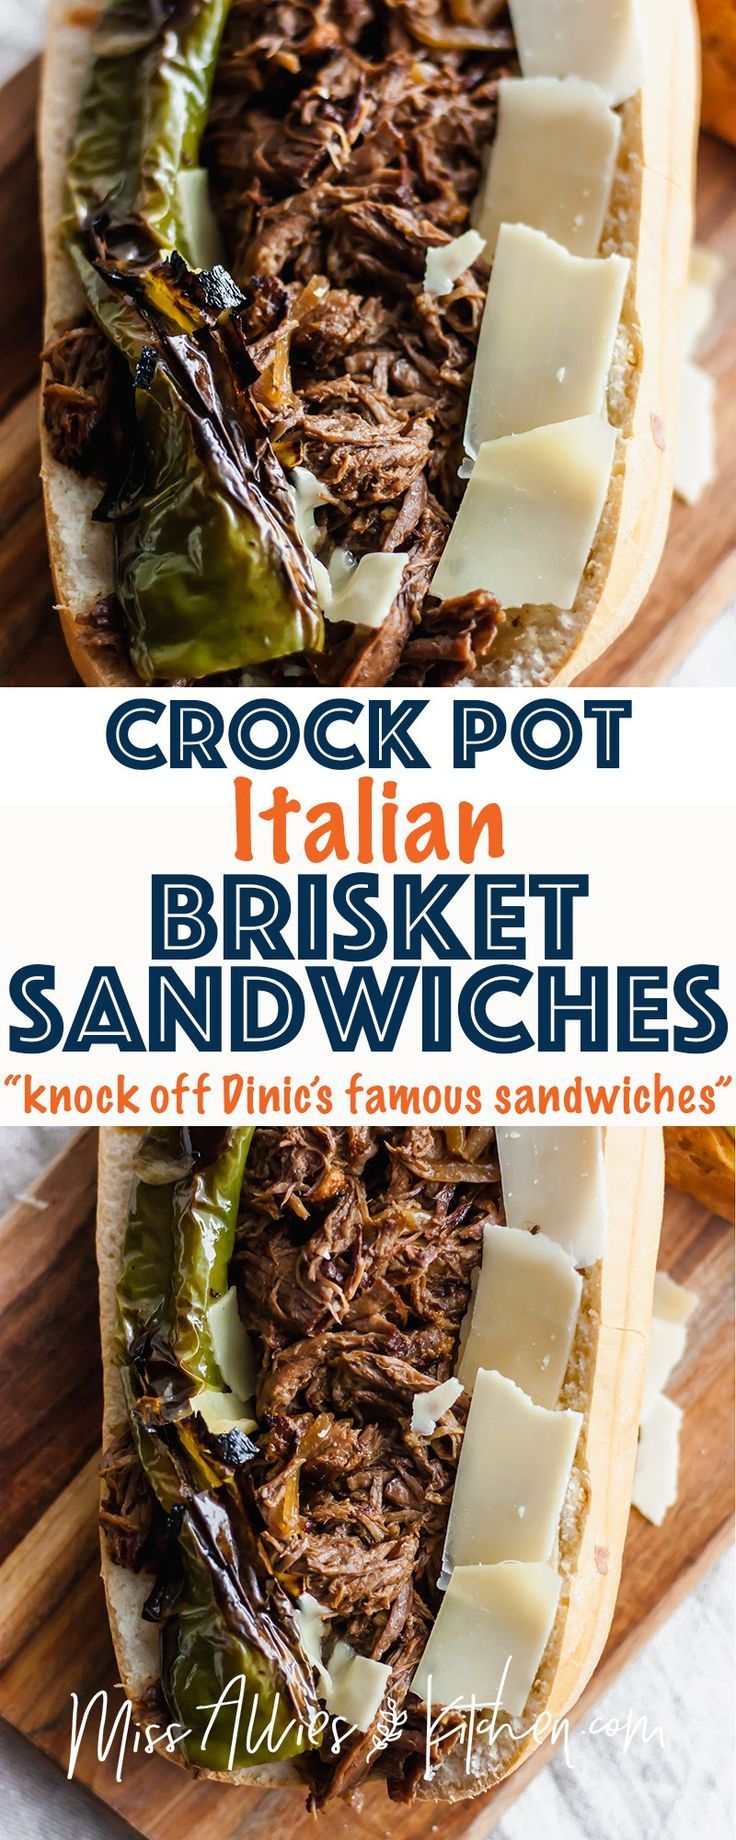 Healthier Slow Cooker Brisket Sandwiches - 2 Ways! The juiciest and easiest way to make pulled brisket right in the slow cooker! This recipe provides a traditional way and a way to make these gluten and grain free! We bet you'll have great ideas for leftovers! #brisket #crockpot #slowcooker #meat #beef #grainfree #glutenfree #healthy #healthyfood